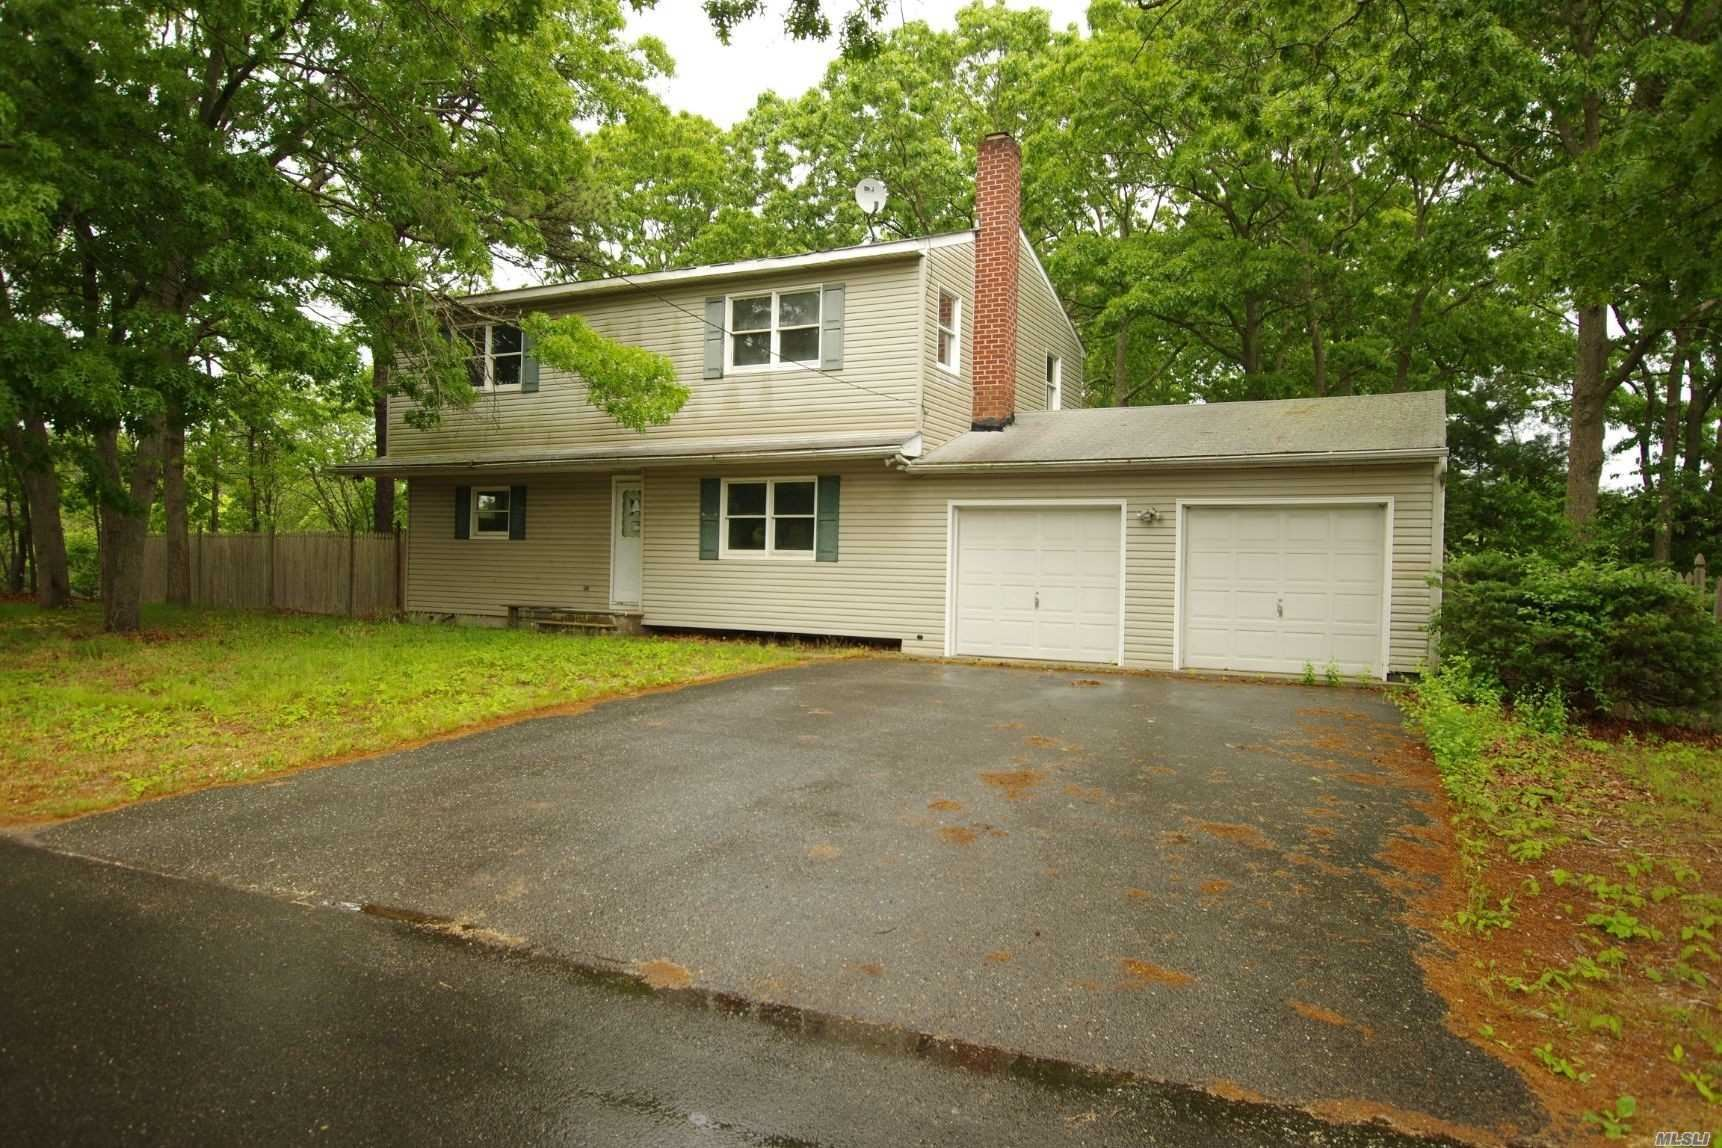 21 N Pine Street, Patchogue, NY 11772 - MLS#: 3223786